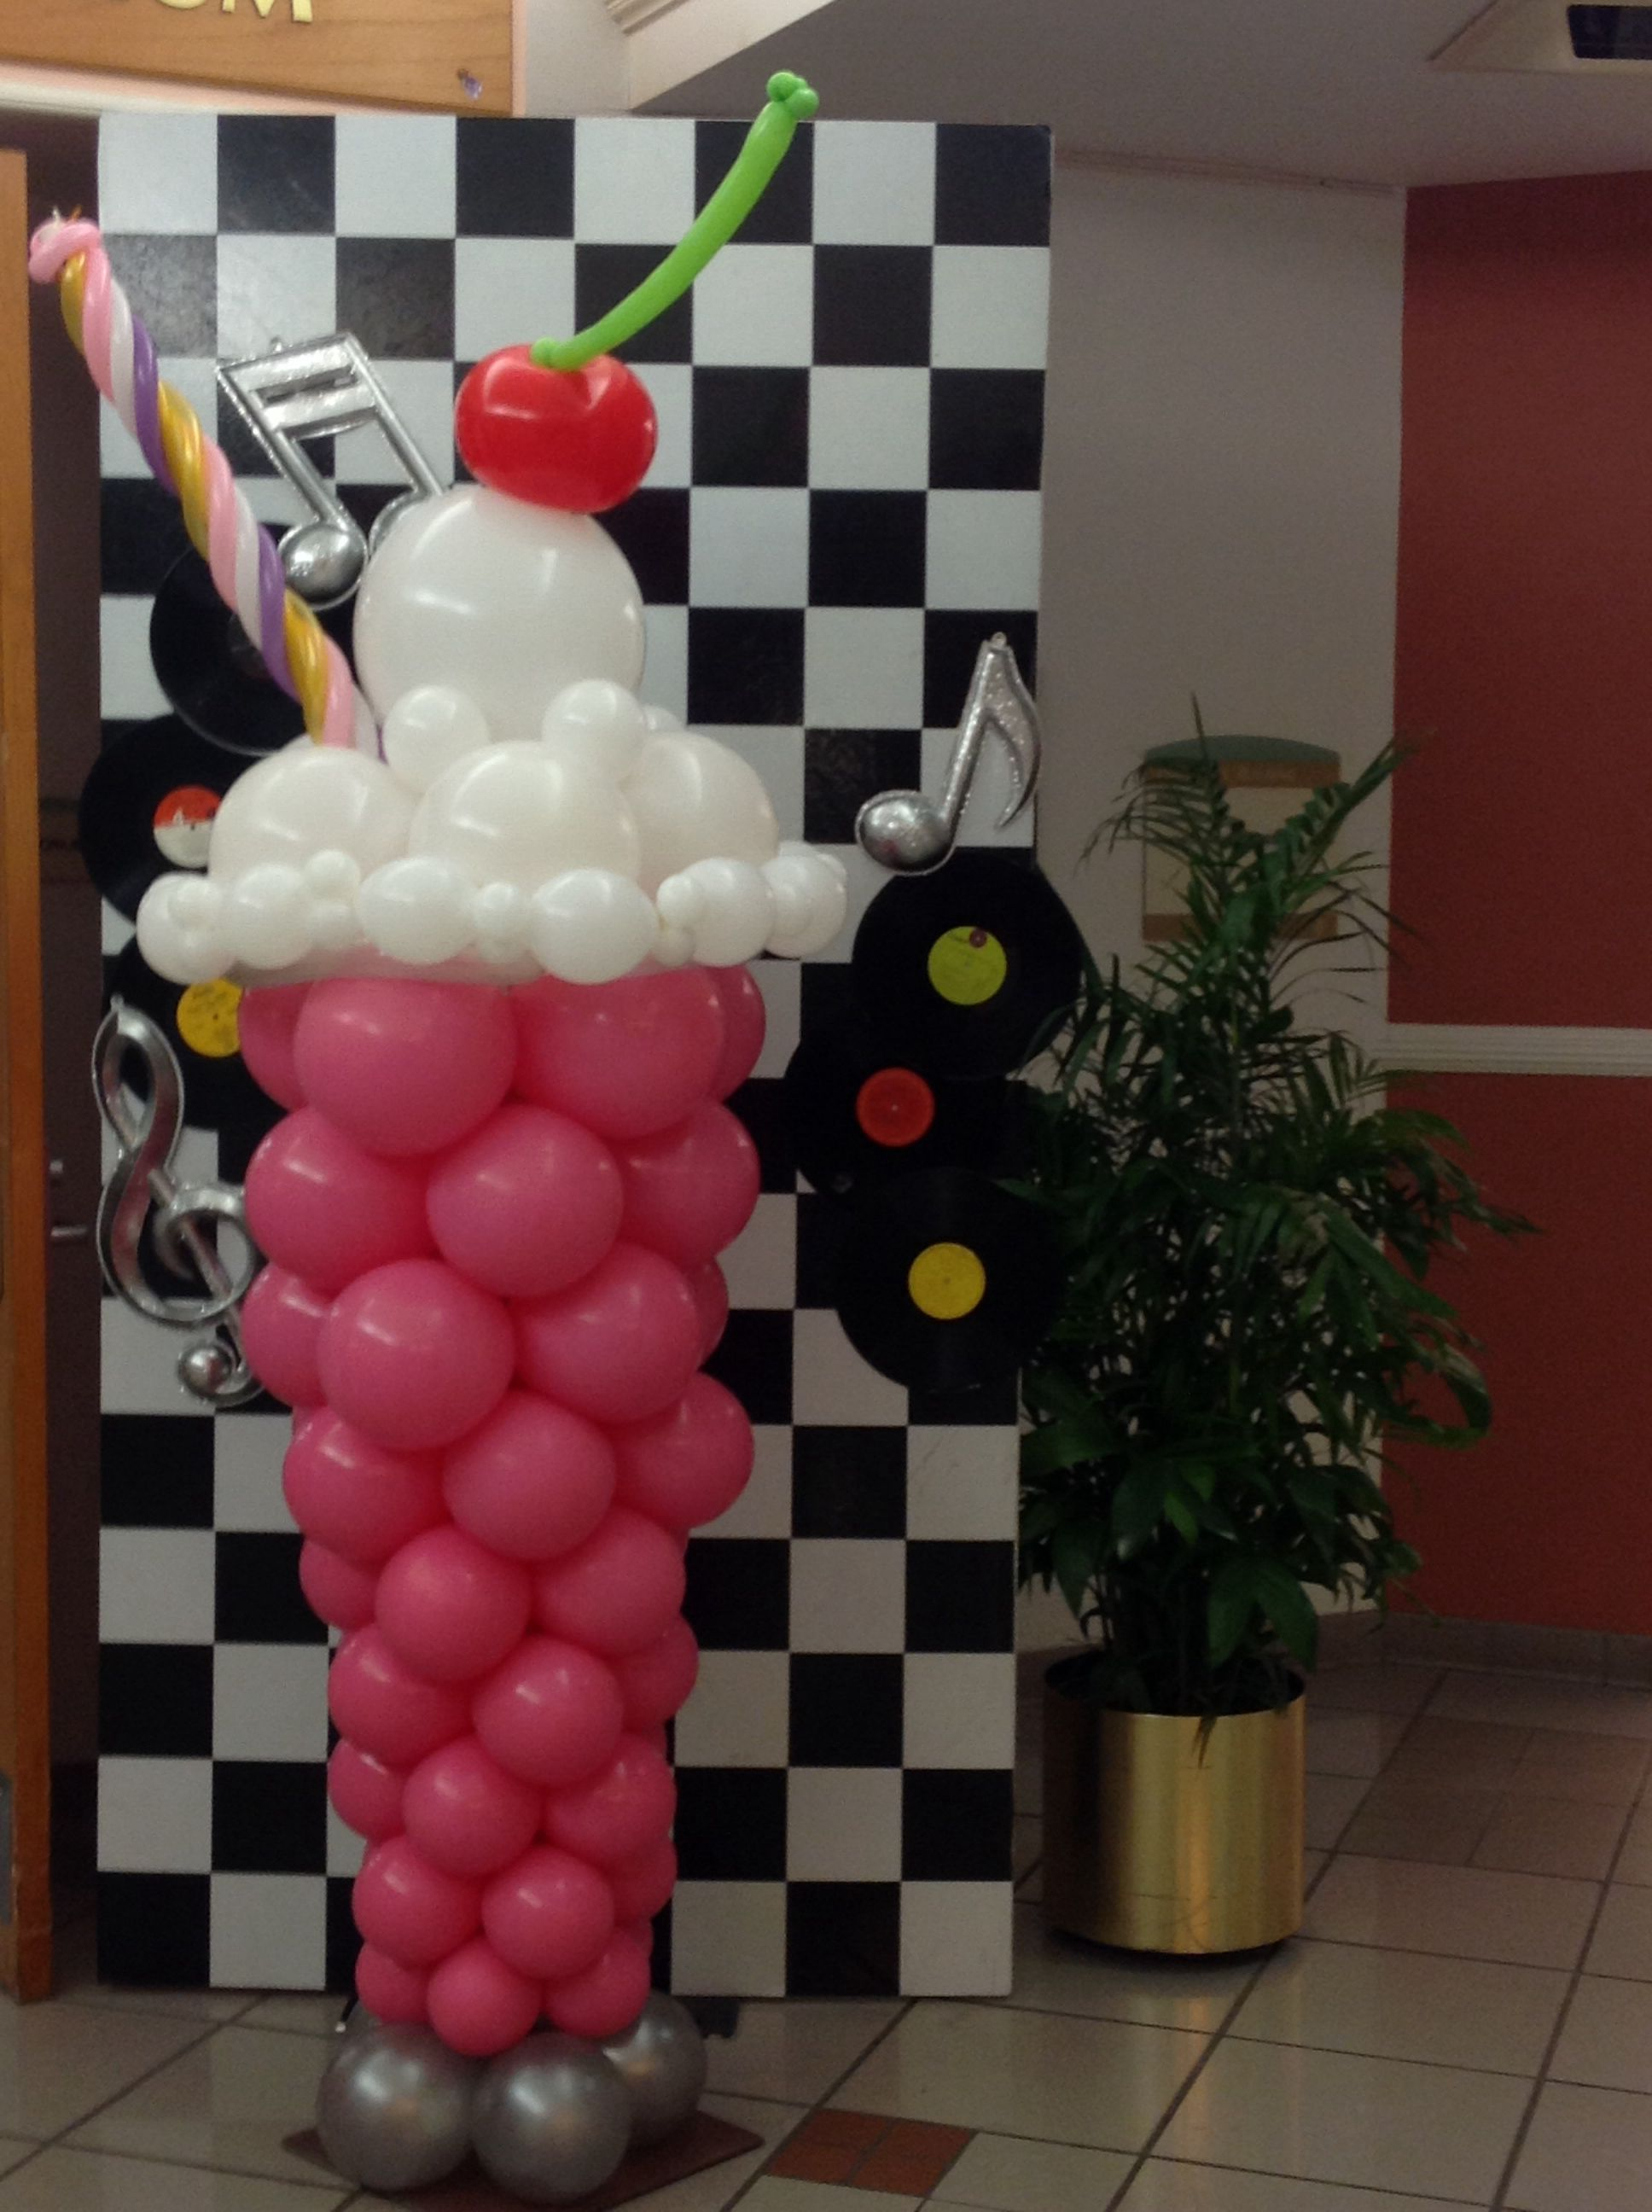 Best Really Like This Use Pvc Piping For Straw And Wrap With This Month